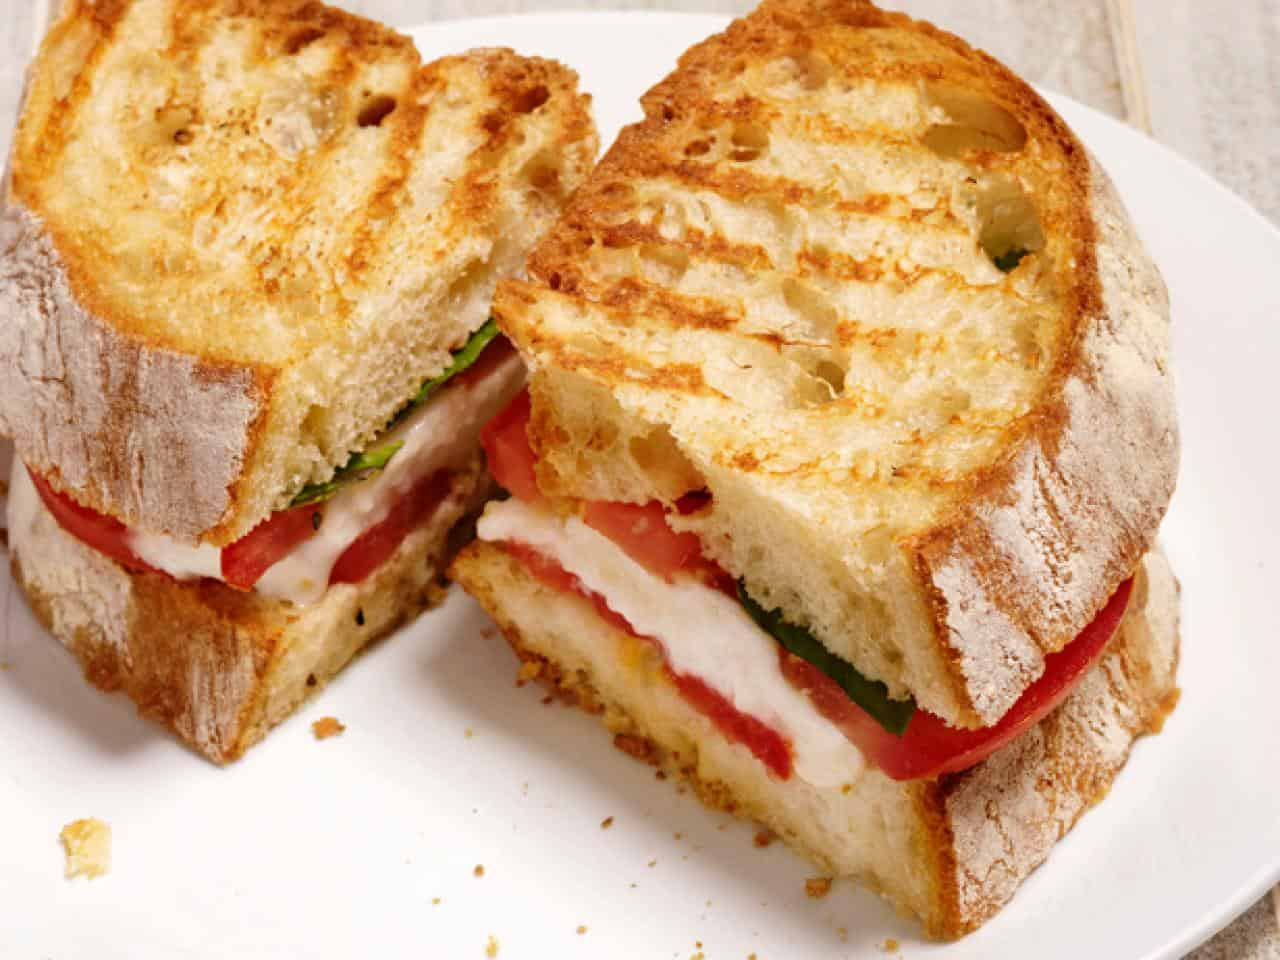 Panini Press Recipes  15 Awesome Recipes Made with a Sandwich Press